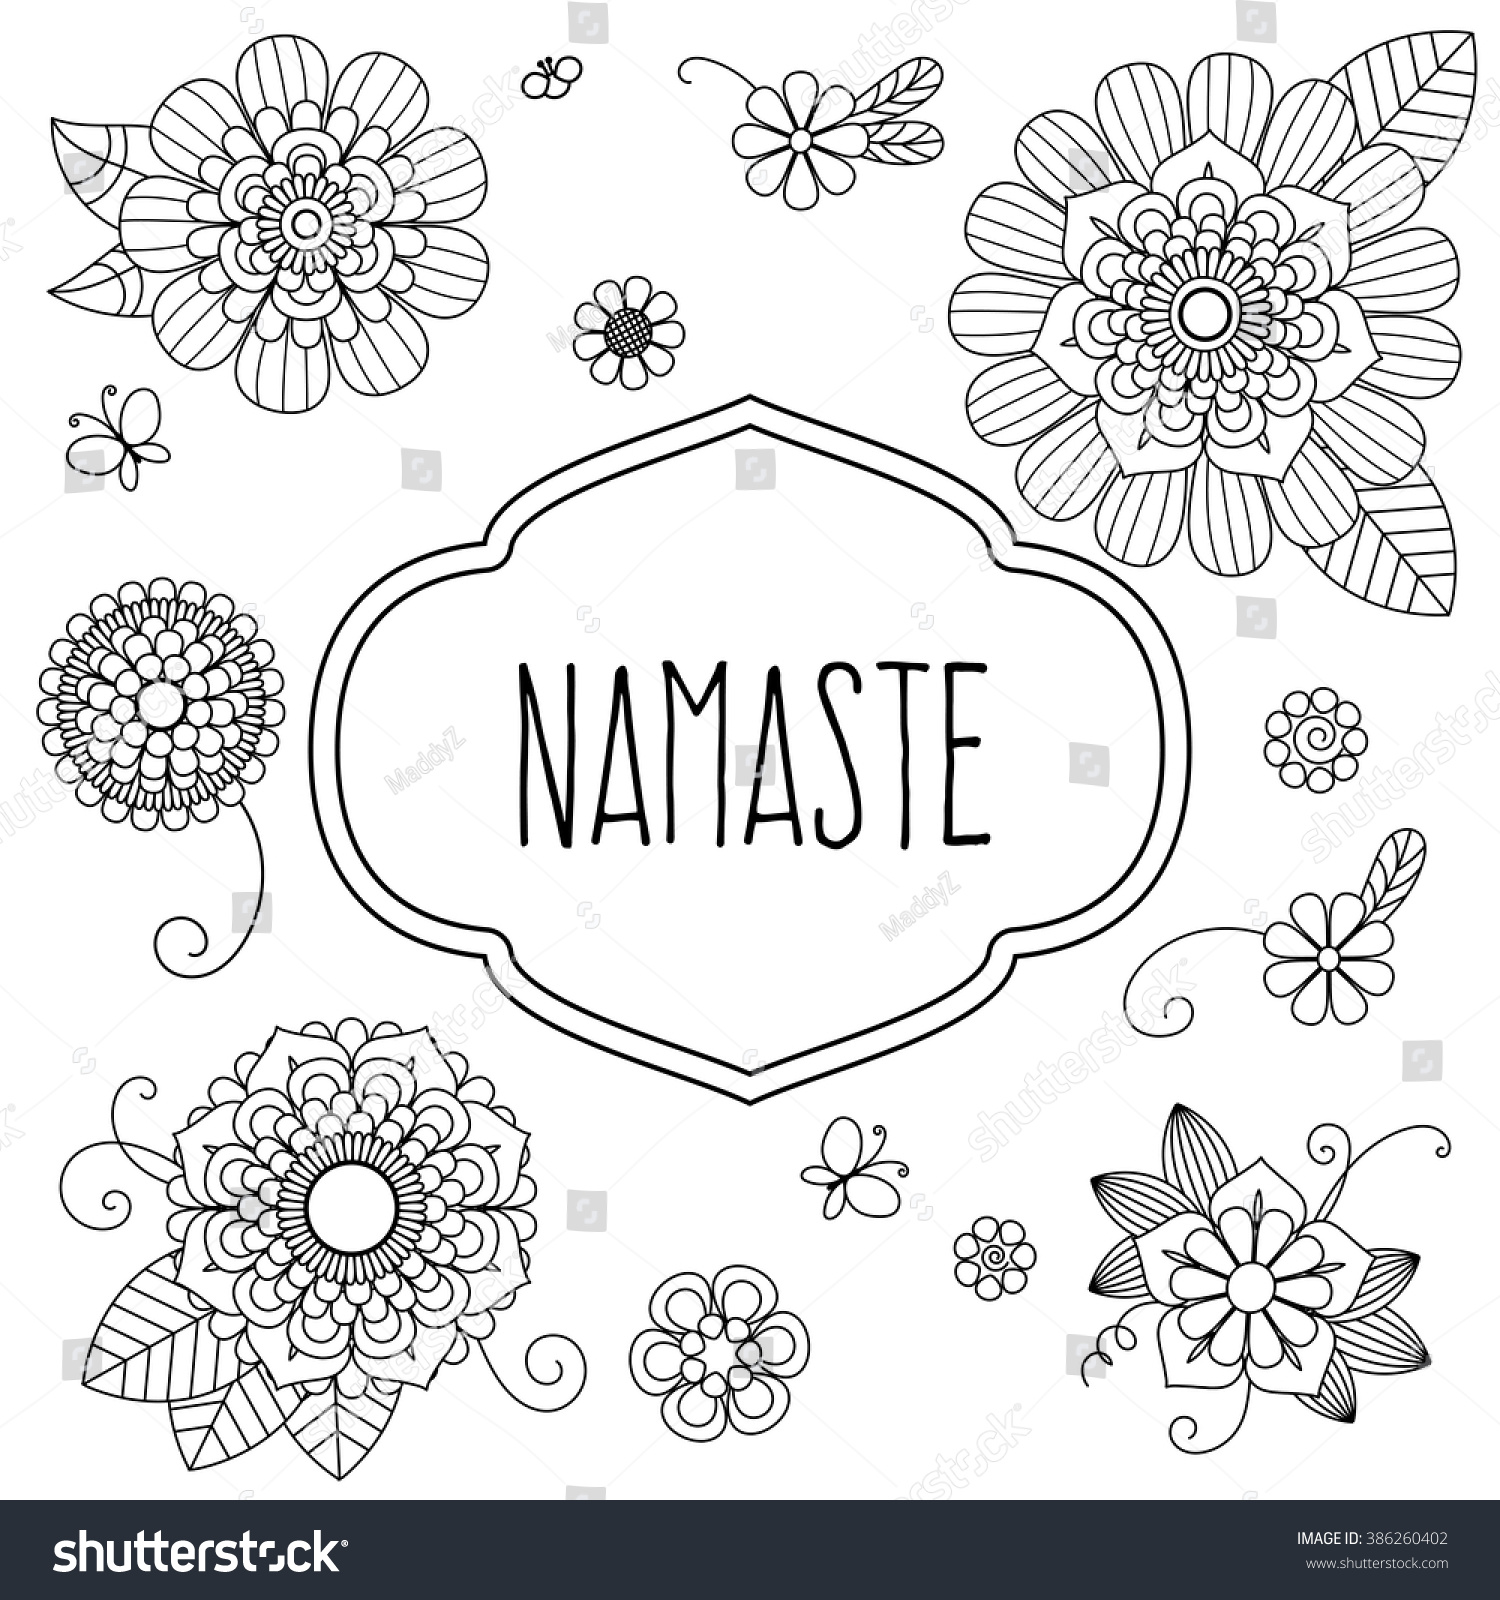 Indian welcome greeting namaste decorated doodle stock photo photo indian welcome greeting namaste decorated with doodle floral elements translation is hello m4hsunfo